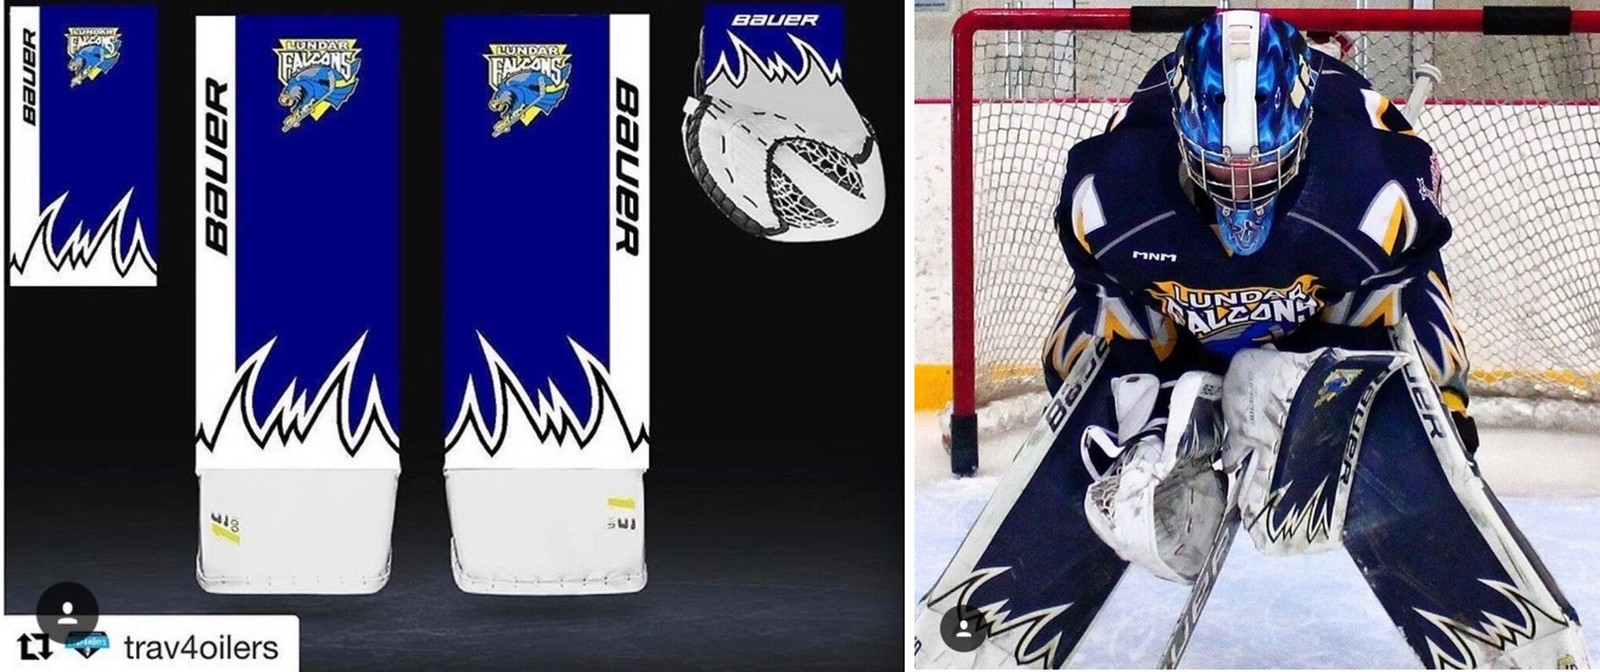 Digitally Printed Graphics Are the Future of Goalie Gear | Uni Watch